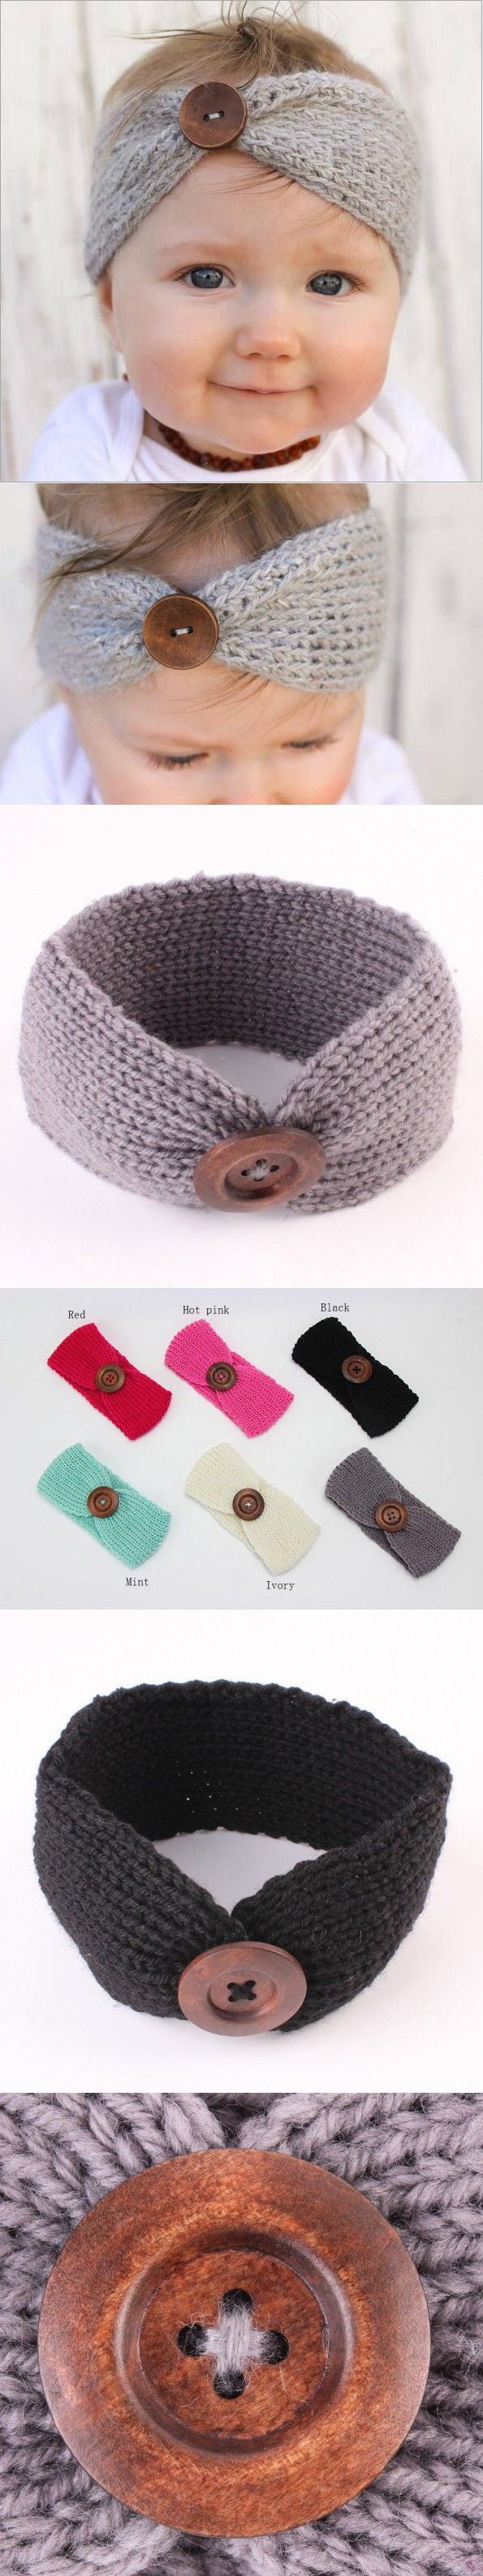 Hot Sale winter wool knitted headbands baby girls kids newborn hair head band wrap turban headband headwear headwrap accessories